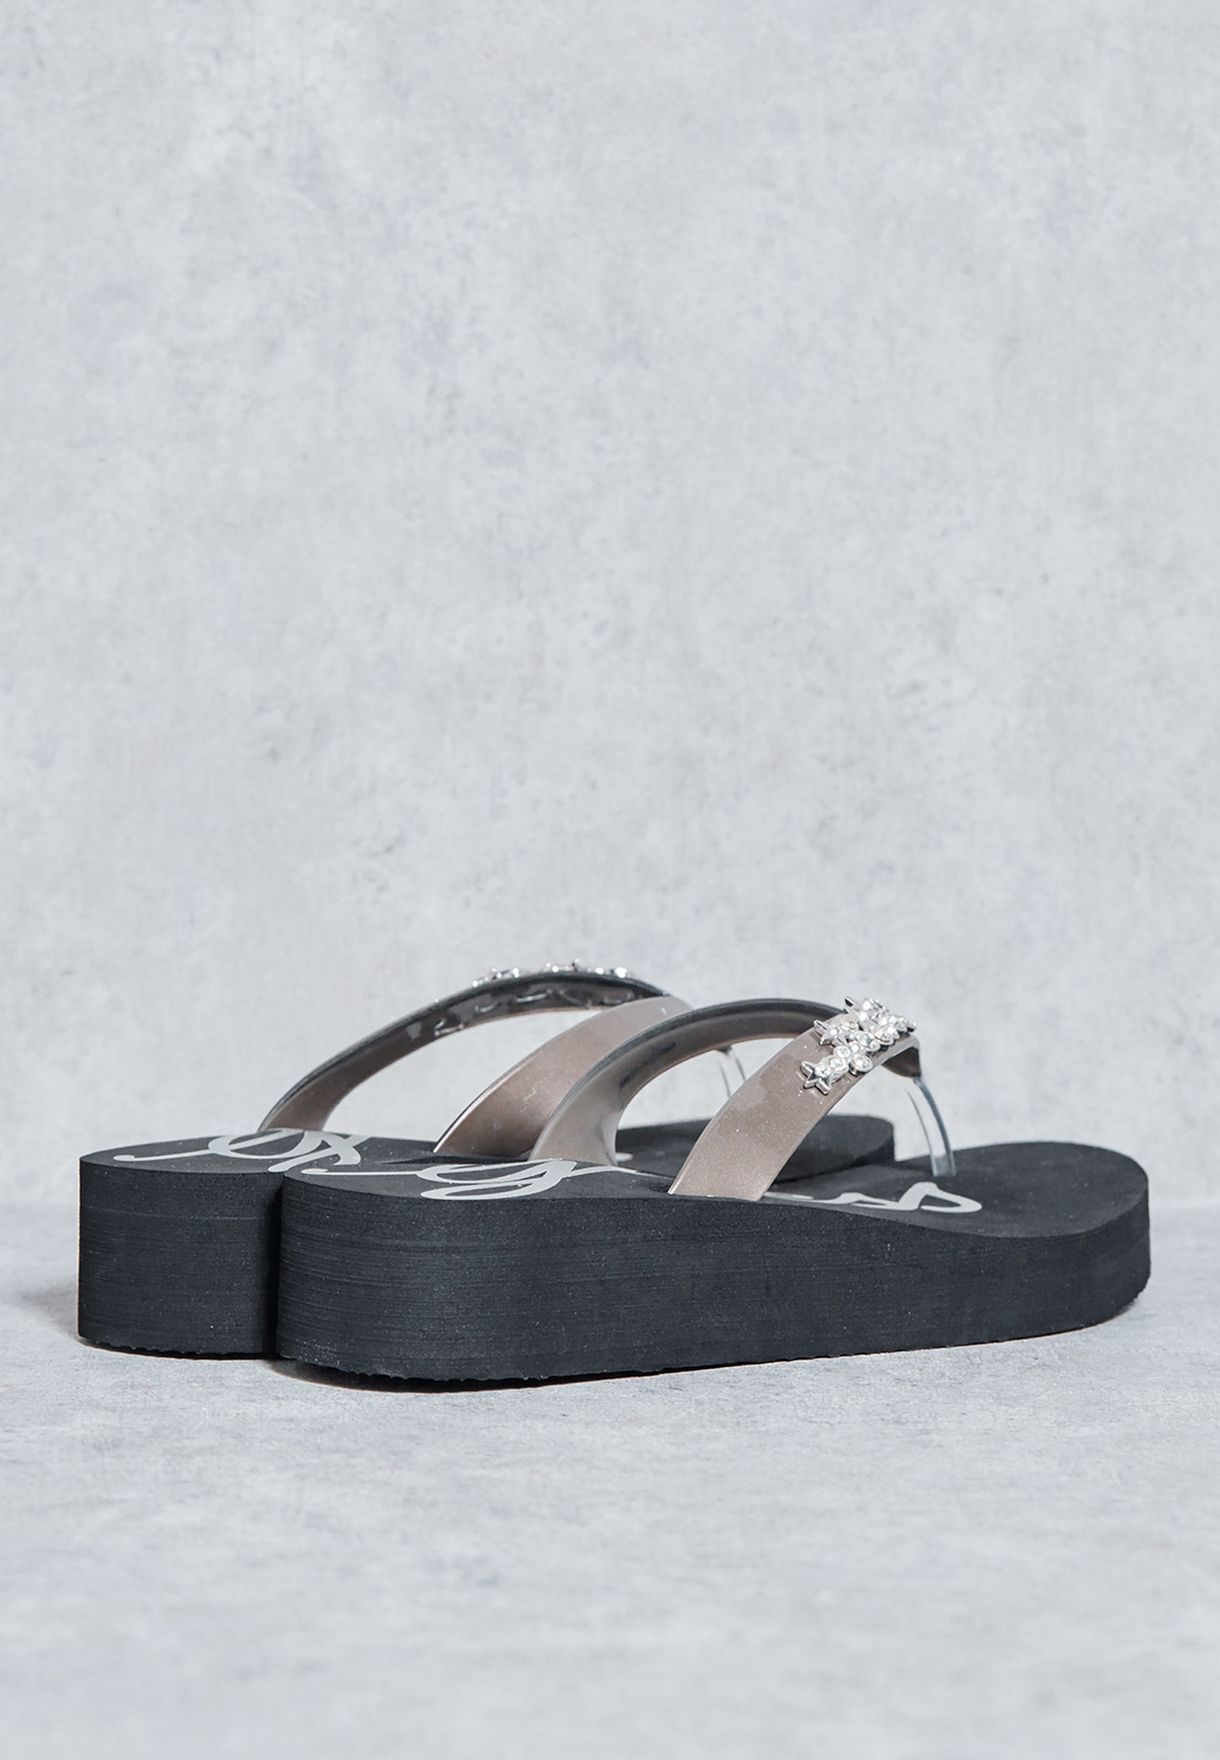 7a600bed0 Shop Guess silver Jewelled Thong Wedge Sandals gwESNA-B for ...